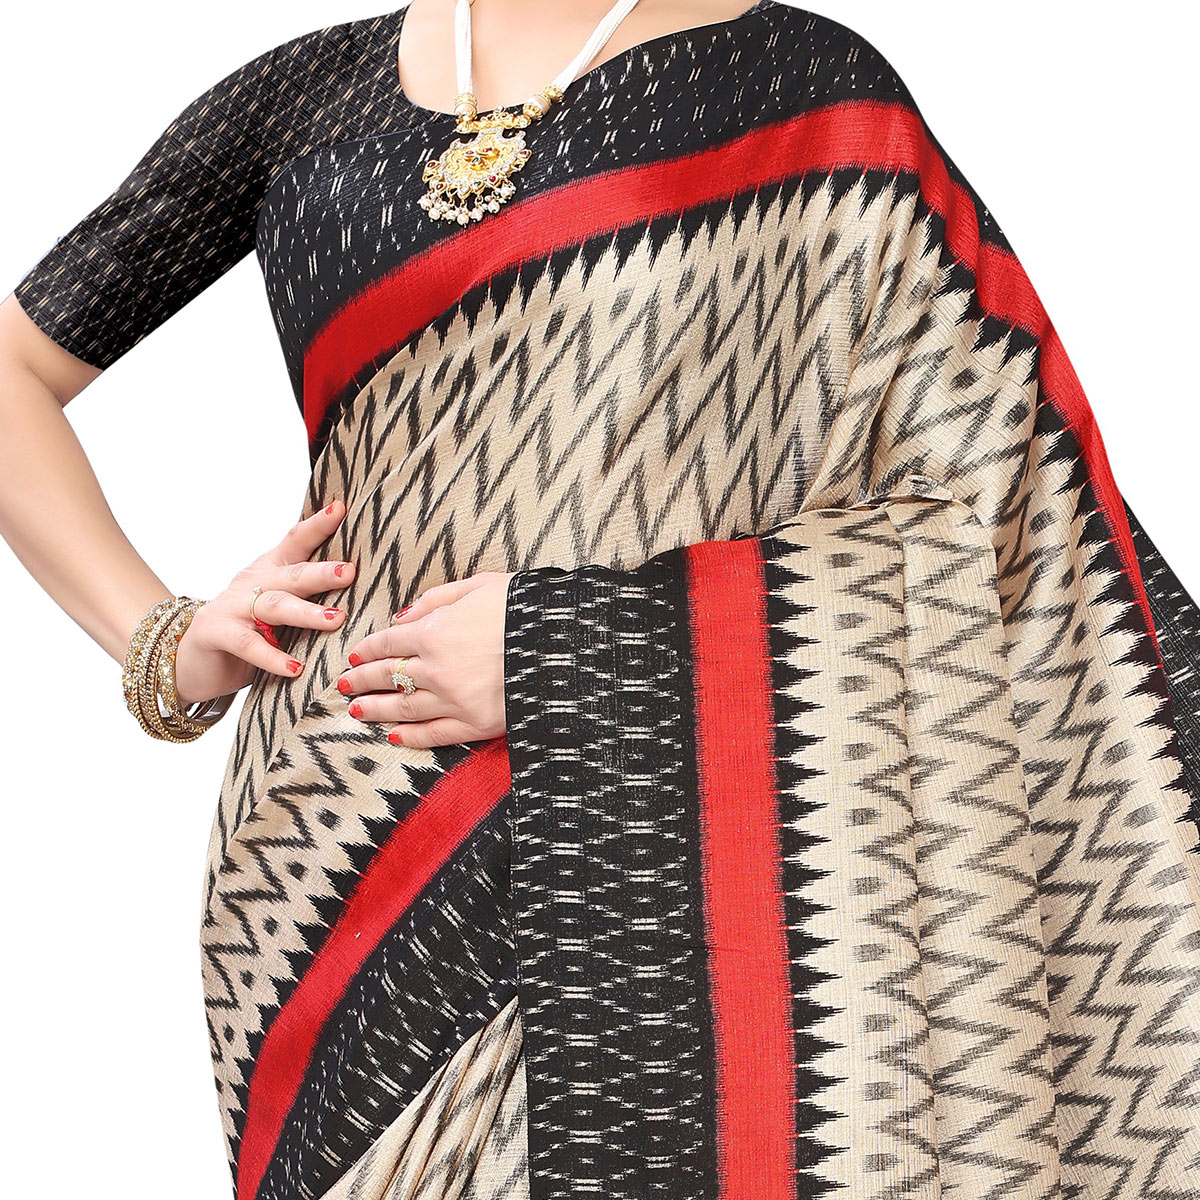 Marvellous Beige-Black Colored Casual Wear Printed Art Silk Saree With Mask